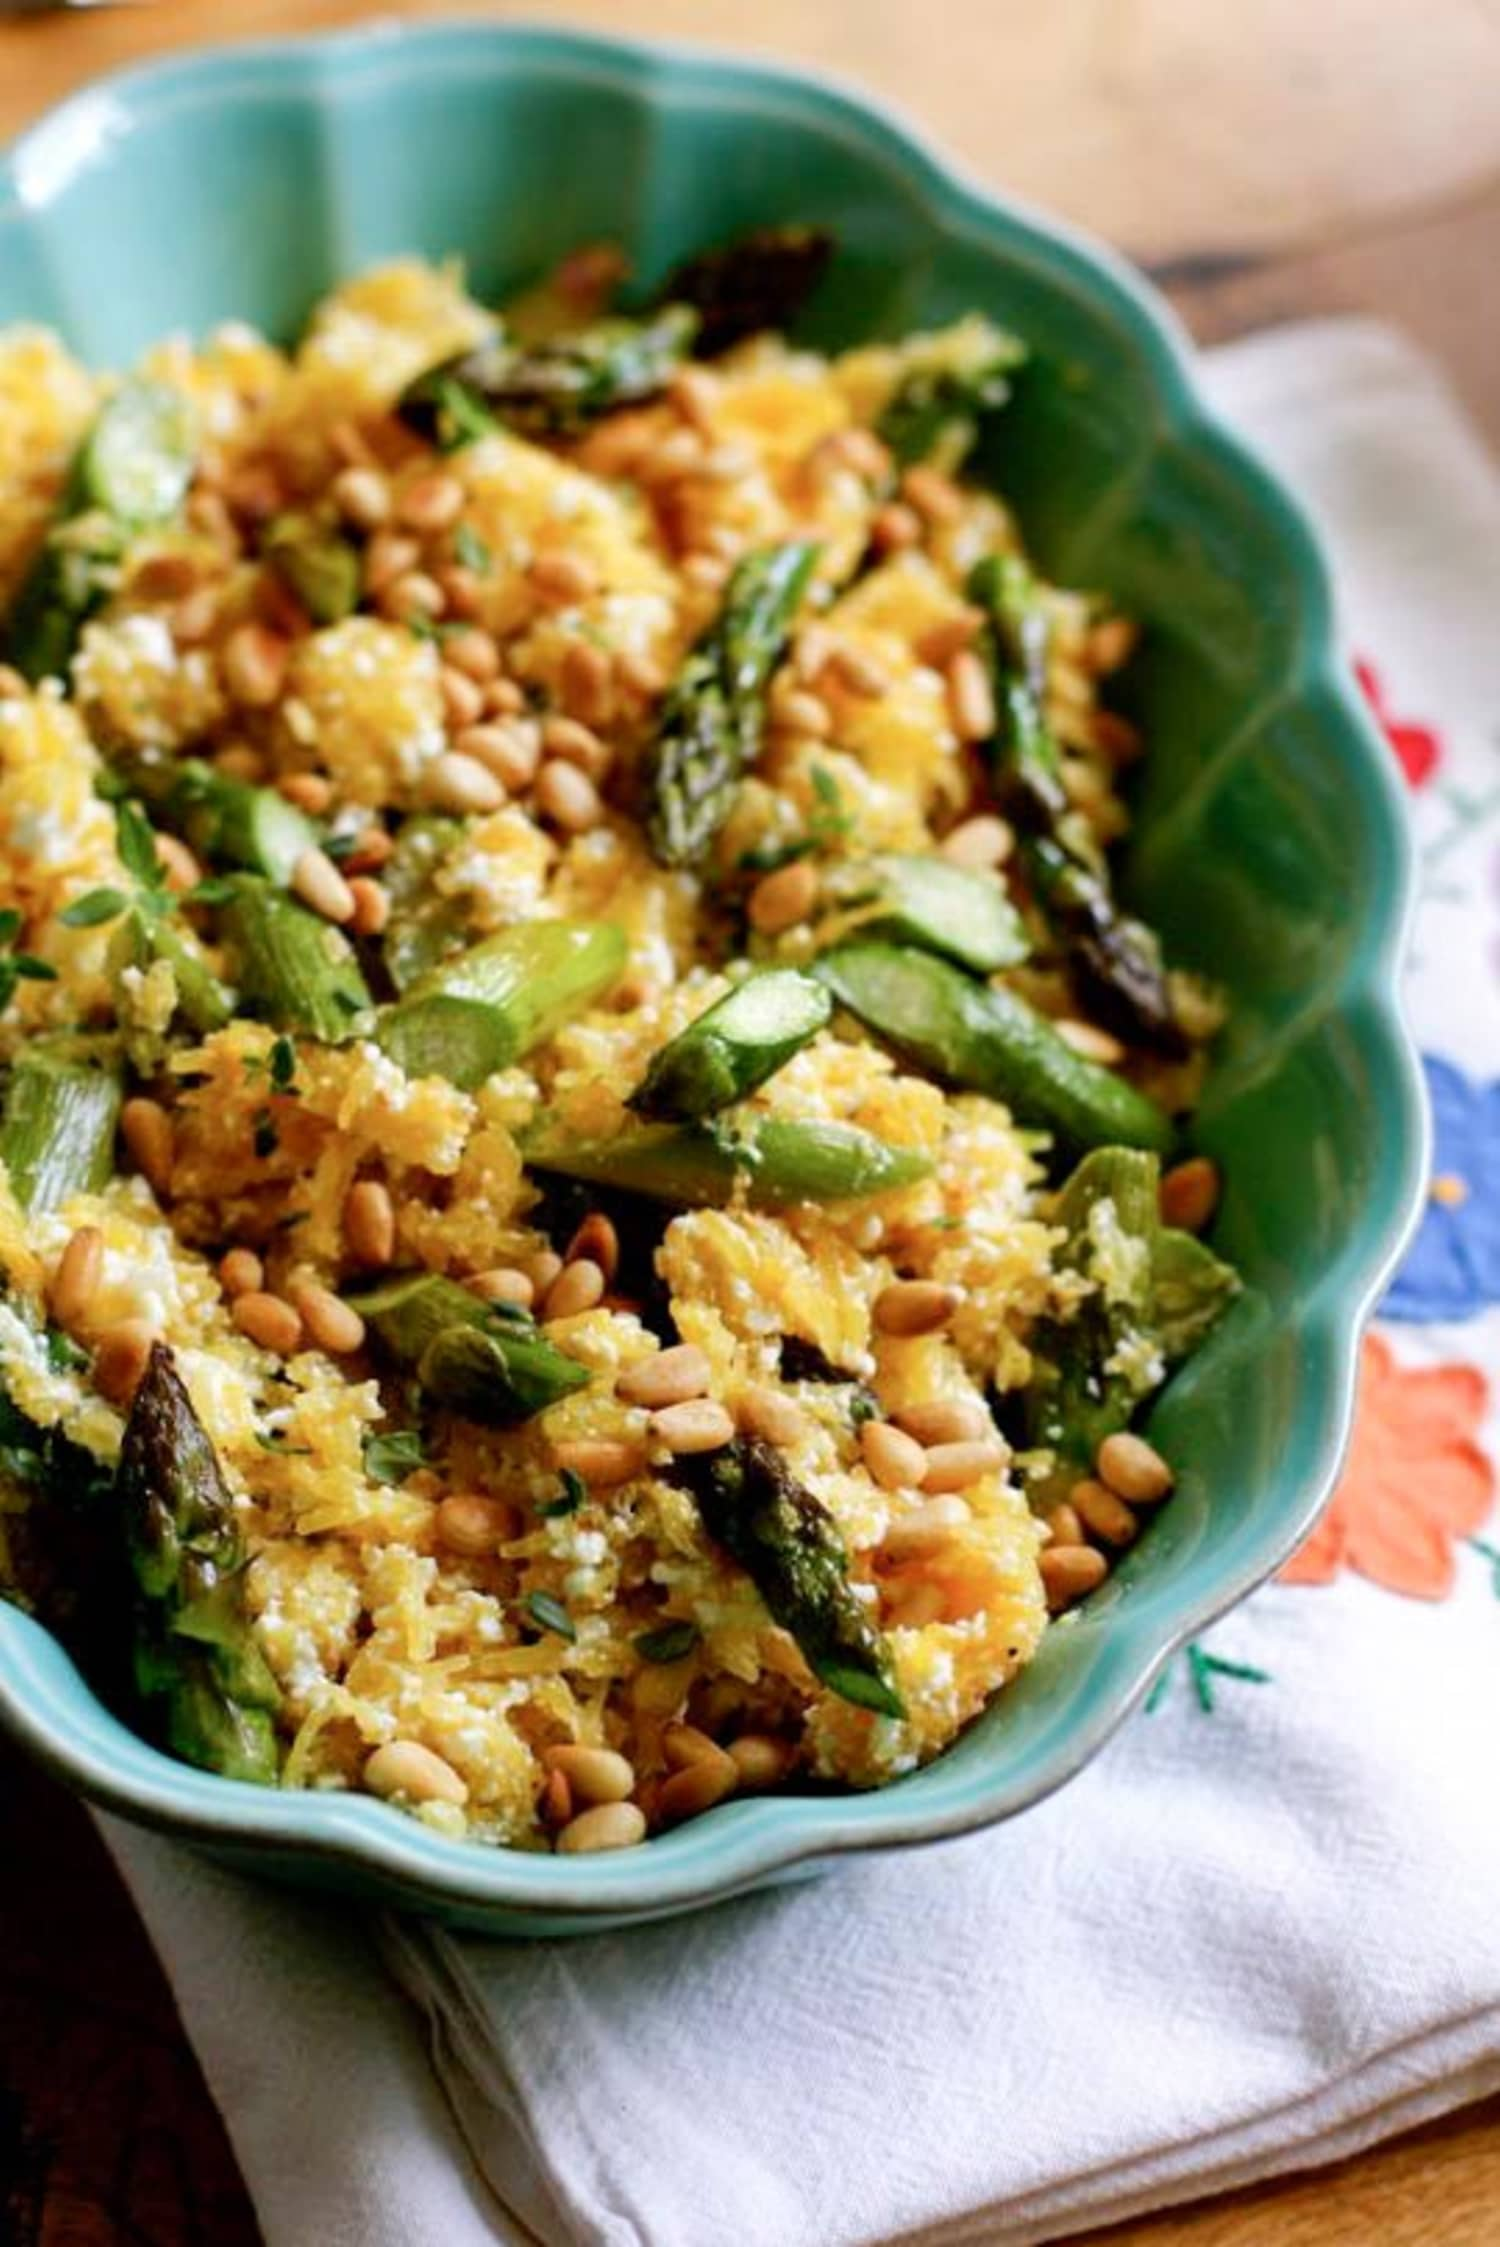 17 Ways to Eat More Vegetables Right Now